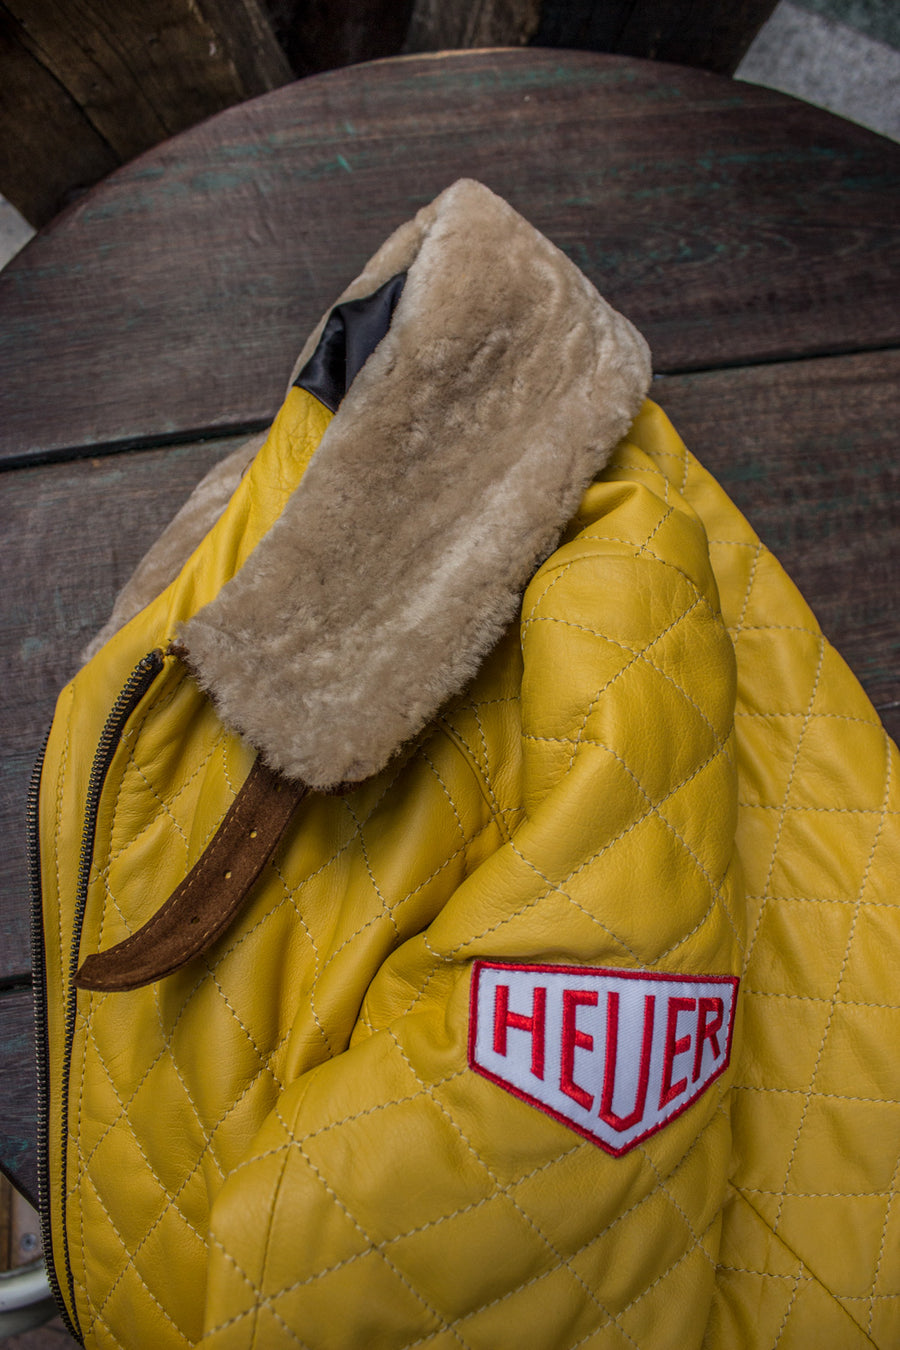 EVEREAST Leather Jacket Shearling Collar Quilted, #HEUER Ed. - PDCollection Leatherwear - Online Shop